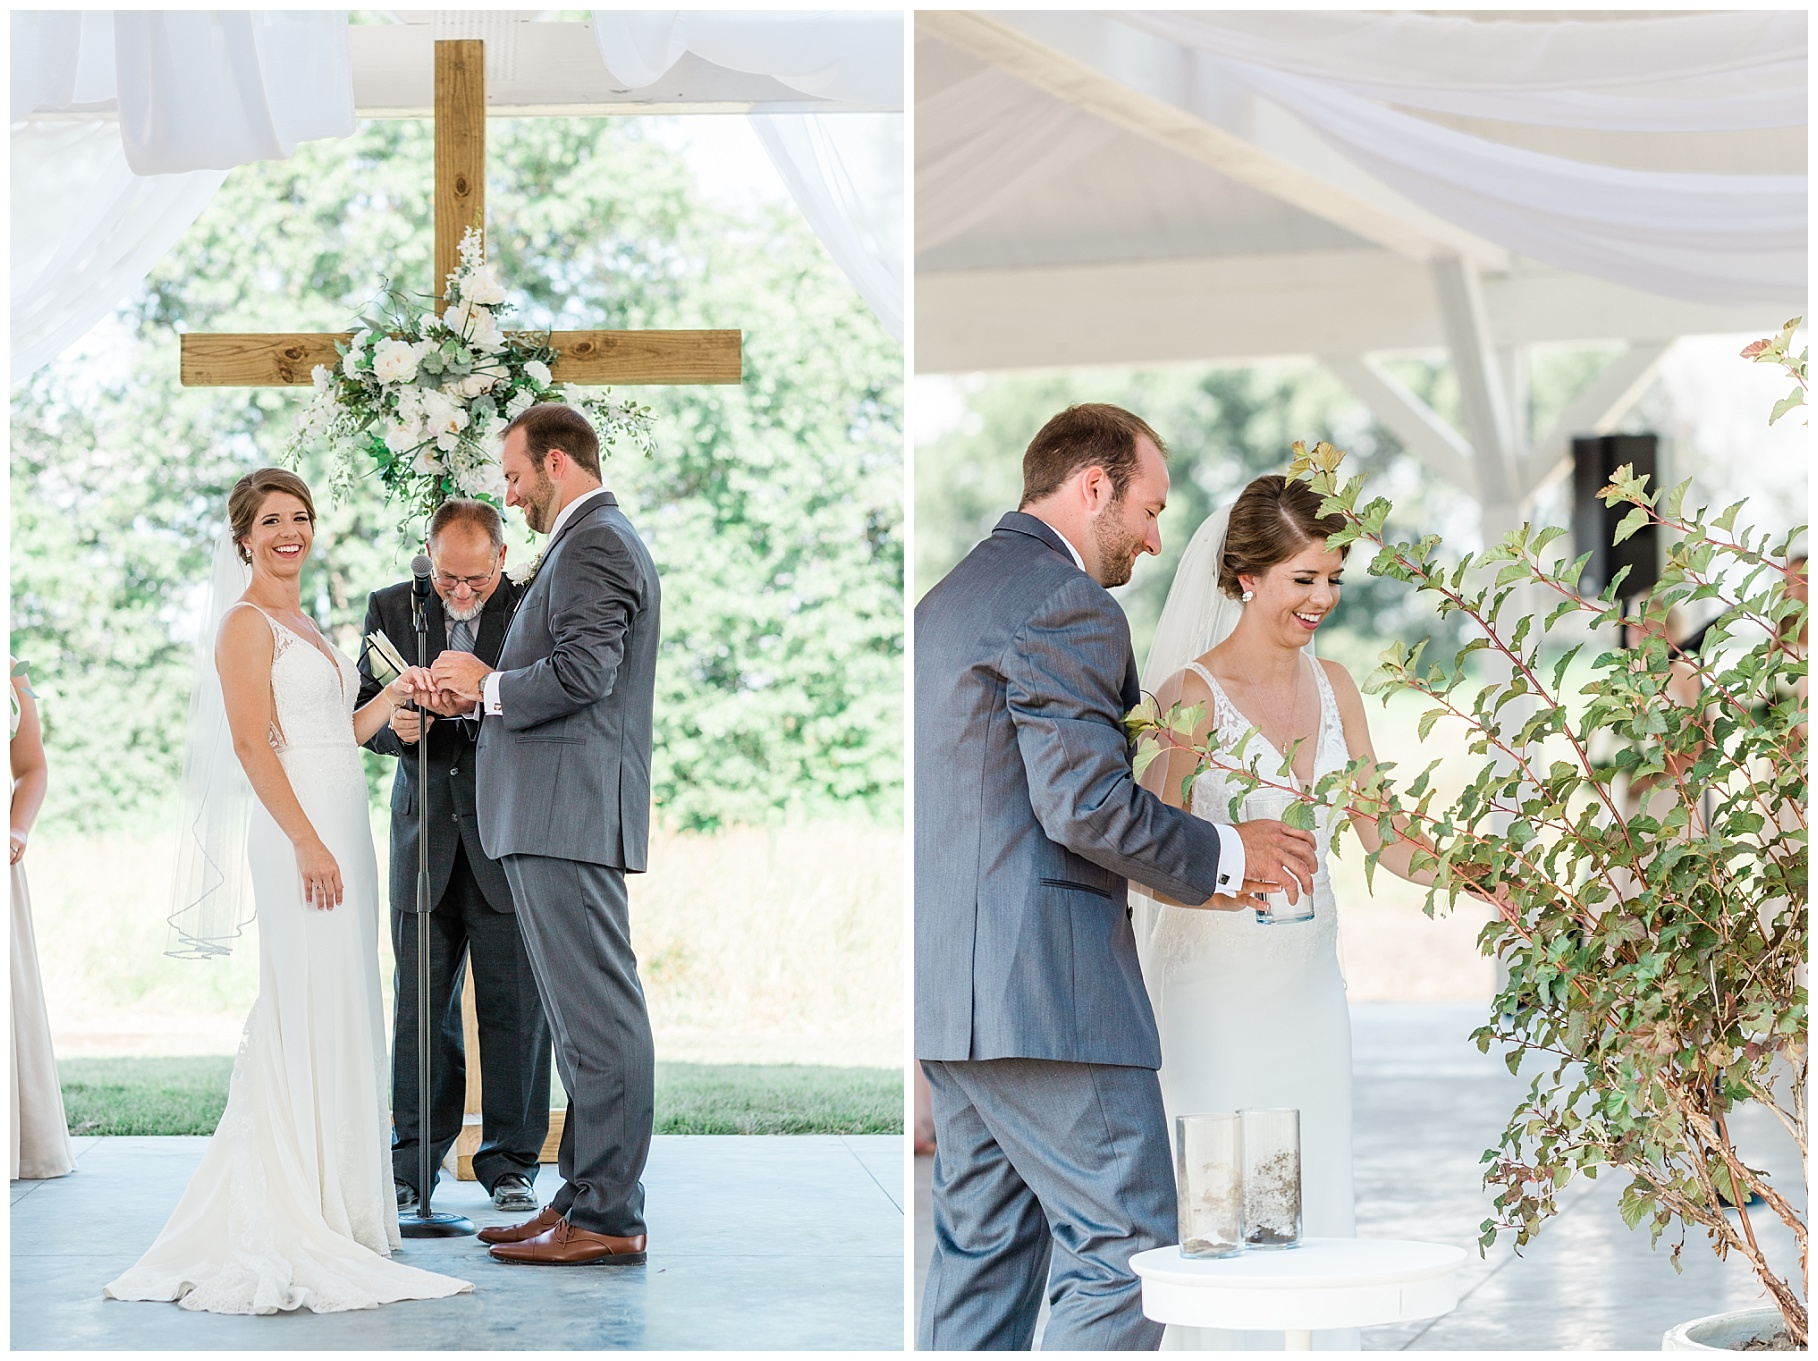 Wedding Ceremony with Confetti Pop at Emerson Fields Venue by Associate Wedding Photographer for Kelsi Kliethermes Photography Best Columbia Missouri and Maui Hawaii Wedding Photographer_0052.jpg